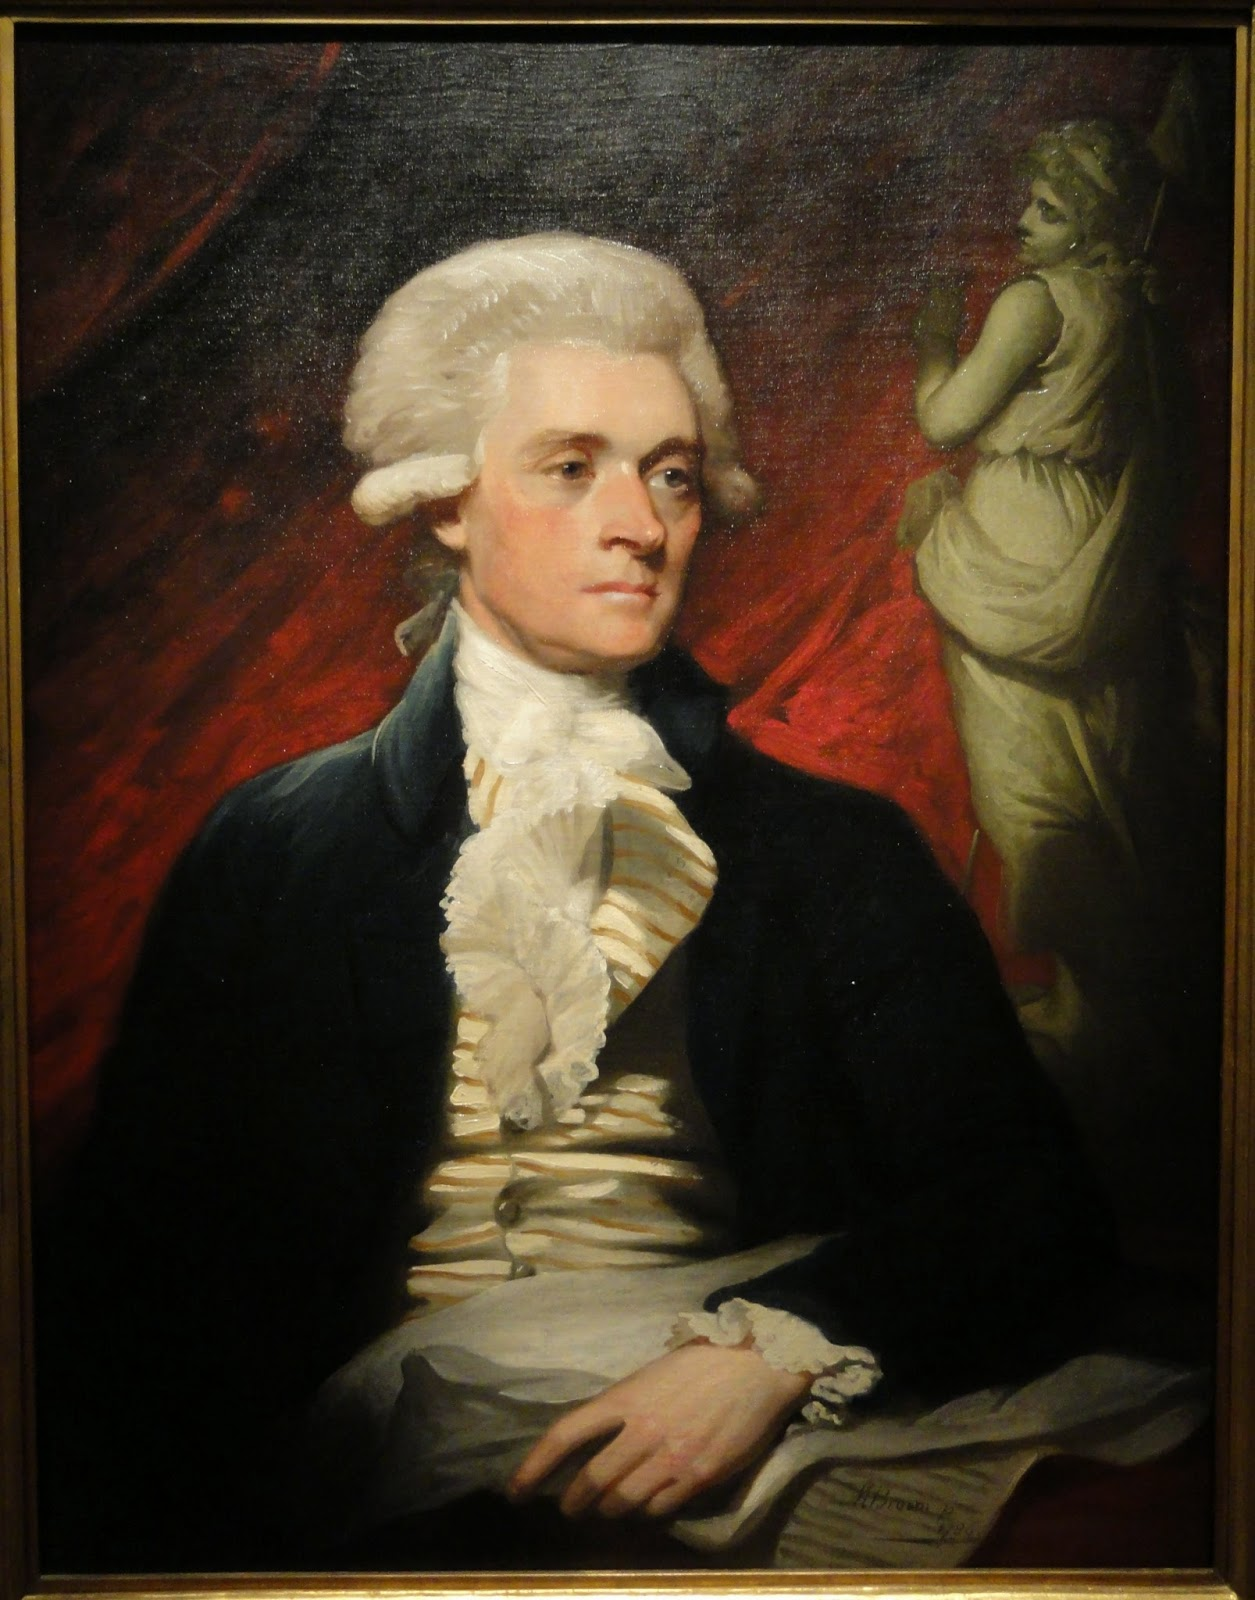 """catholic singles in jefferson Two years earlier, president thomas jefferson had learned of a secret treaty between spain and france returning louisiana to french control jefferson was greatly alarmed he could not allow the french emperor, napoleon bonaparte, to control the vital port city of new orleans, """"through which the."""